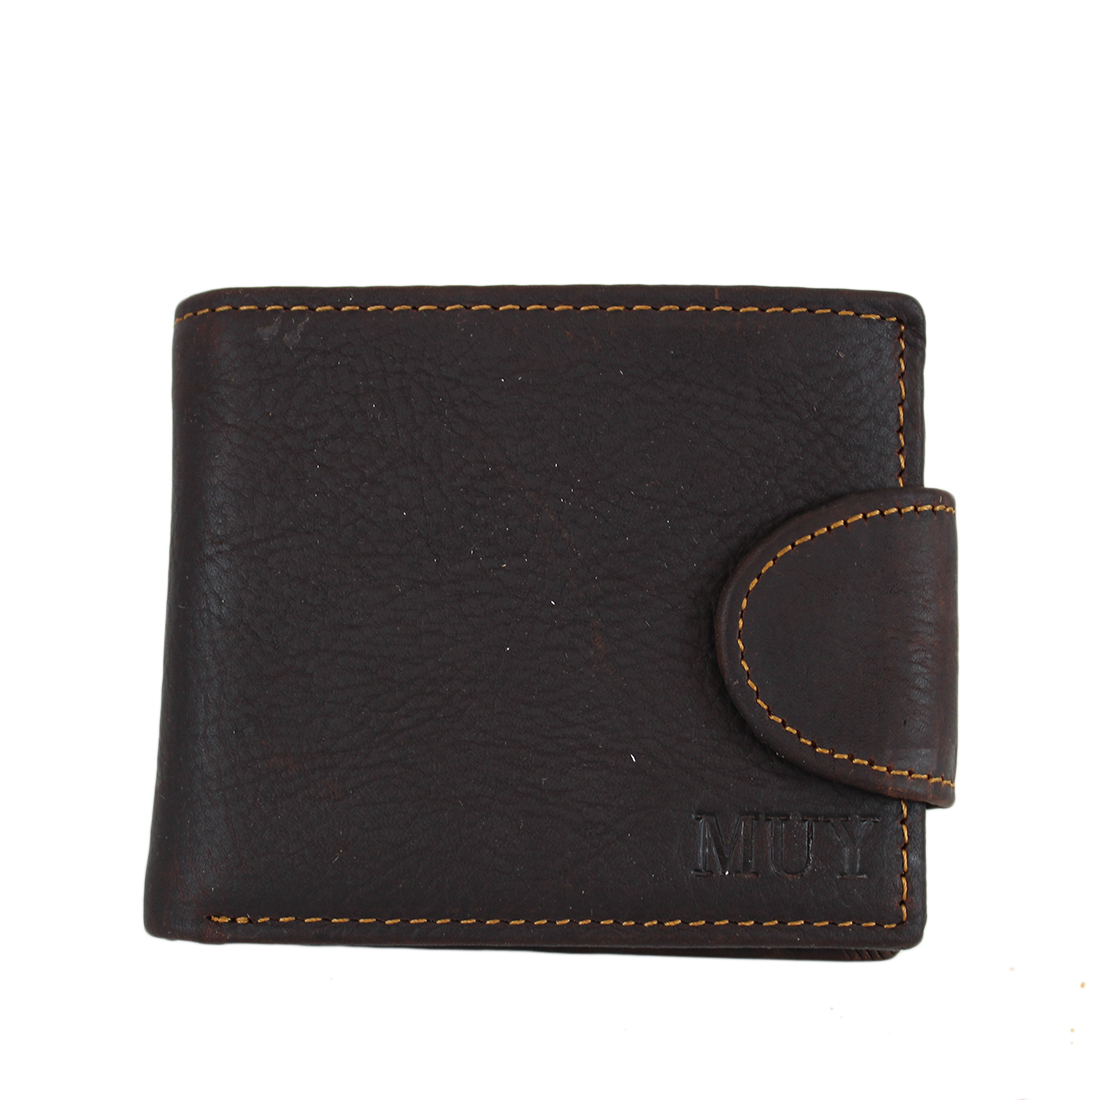 Real Leather Multifunctional Wallet